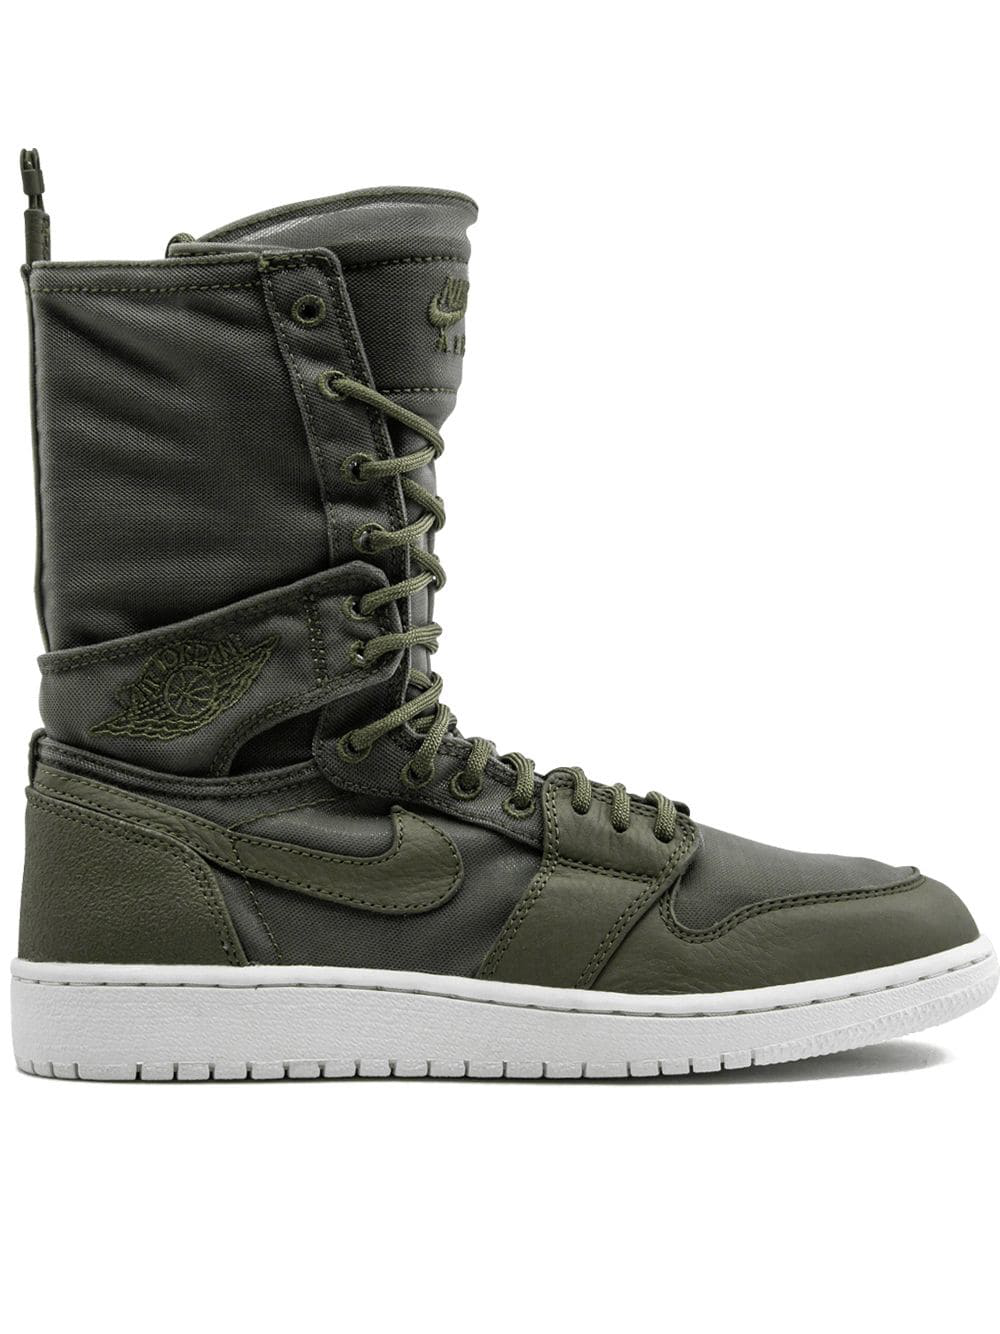 super popular 531b6 e10df Jordan Air 1 Explorer Xx Sneakers - Green